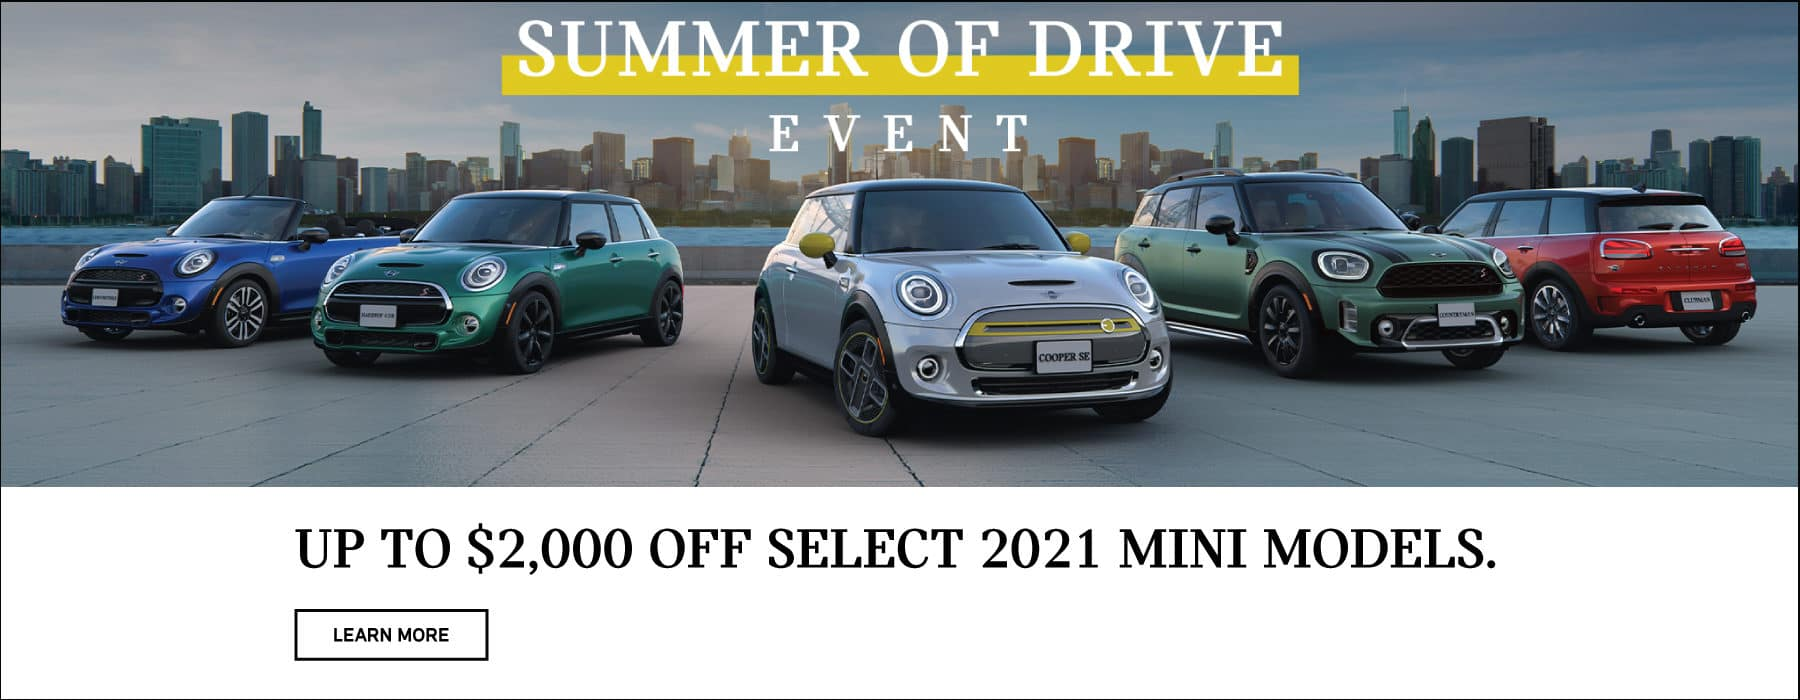 Up to $2,000 off select 2021 models. Valid through 06/01/21. Click to learn more. See dealer for full details. Image shows a family of 2021 MINI vehicles parked on concrete outside in front of a city skyline. The MINI